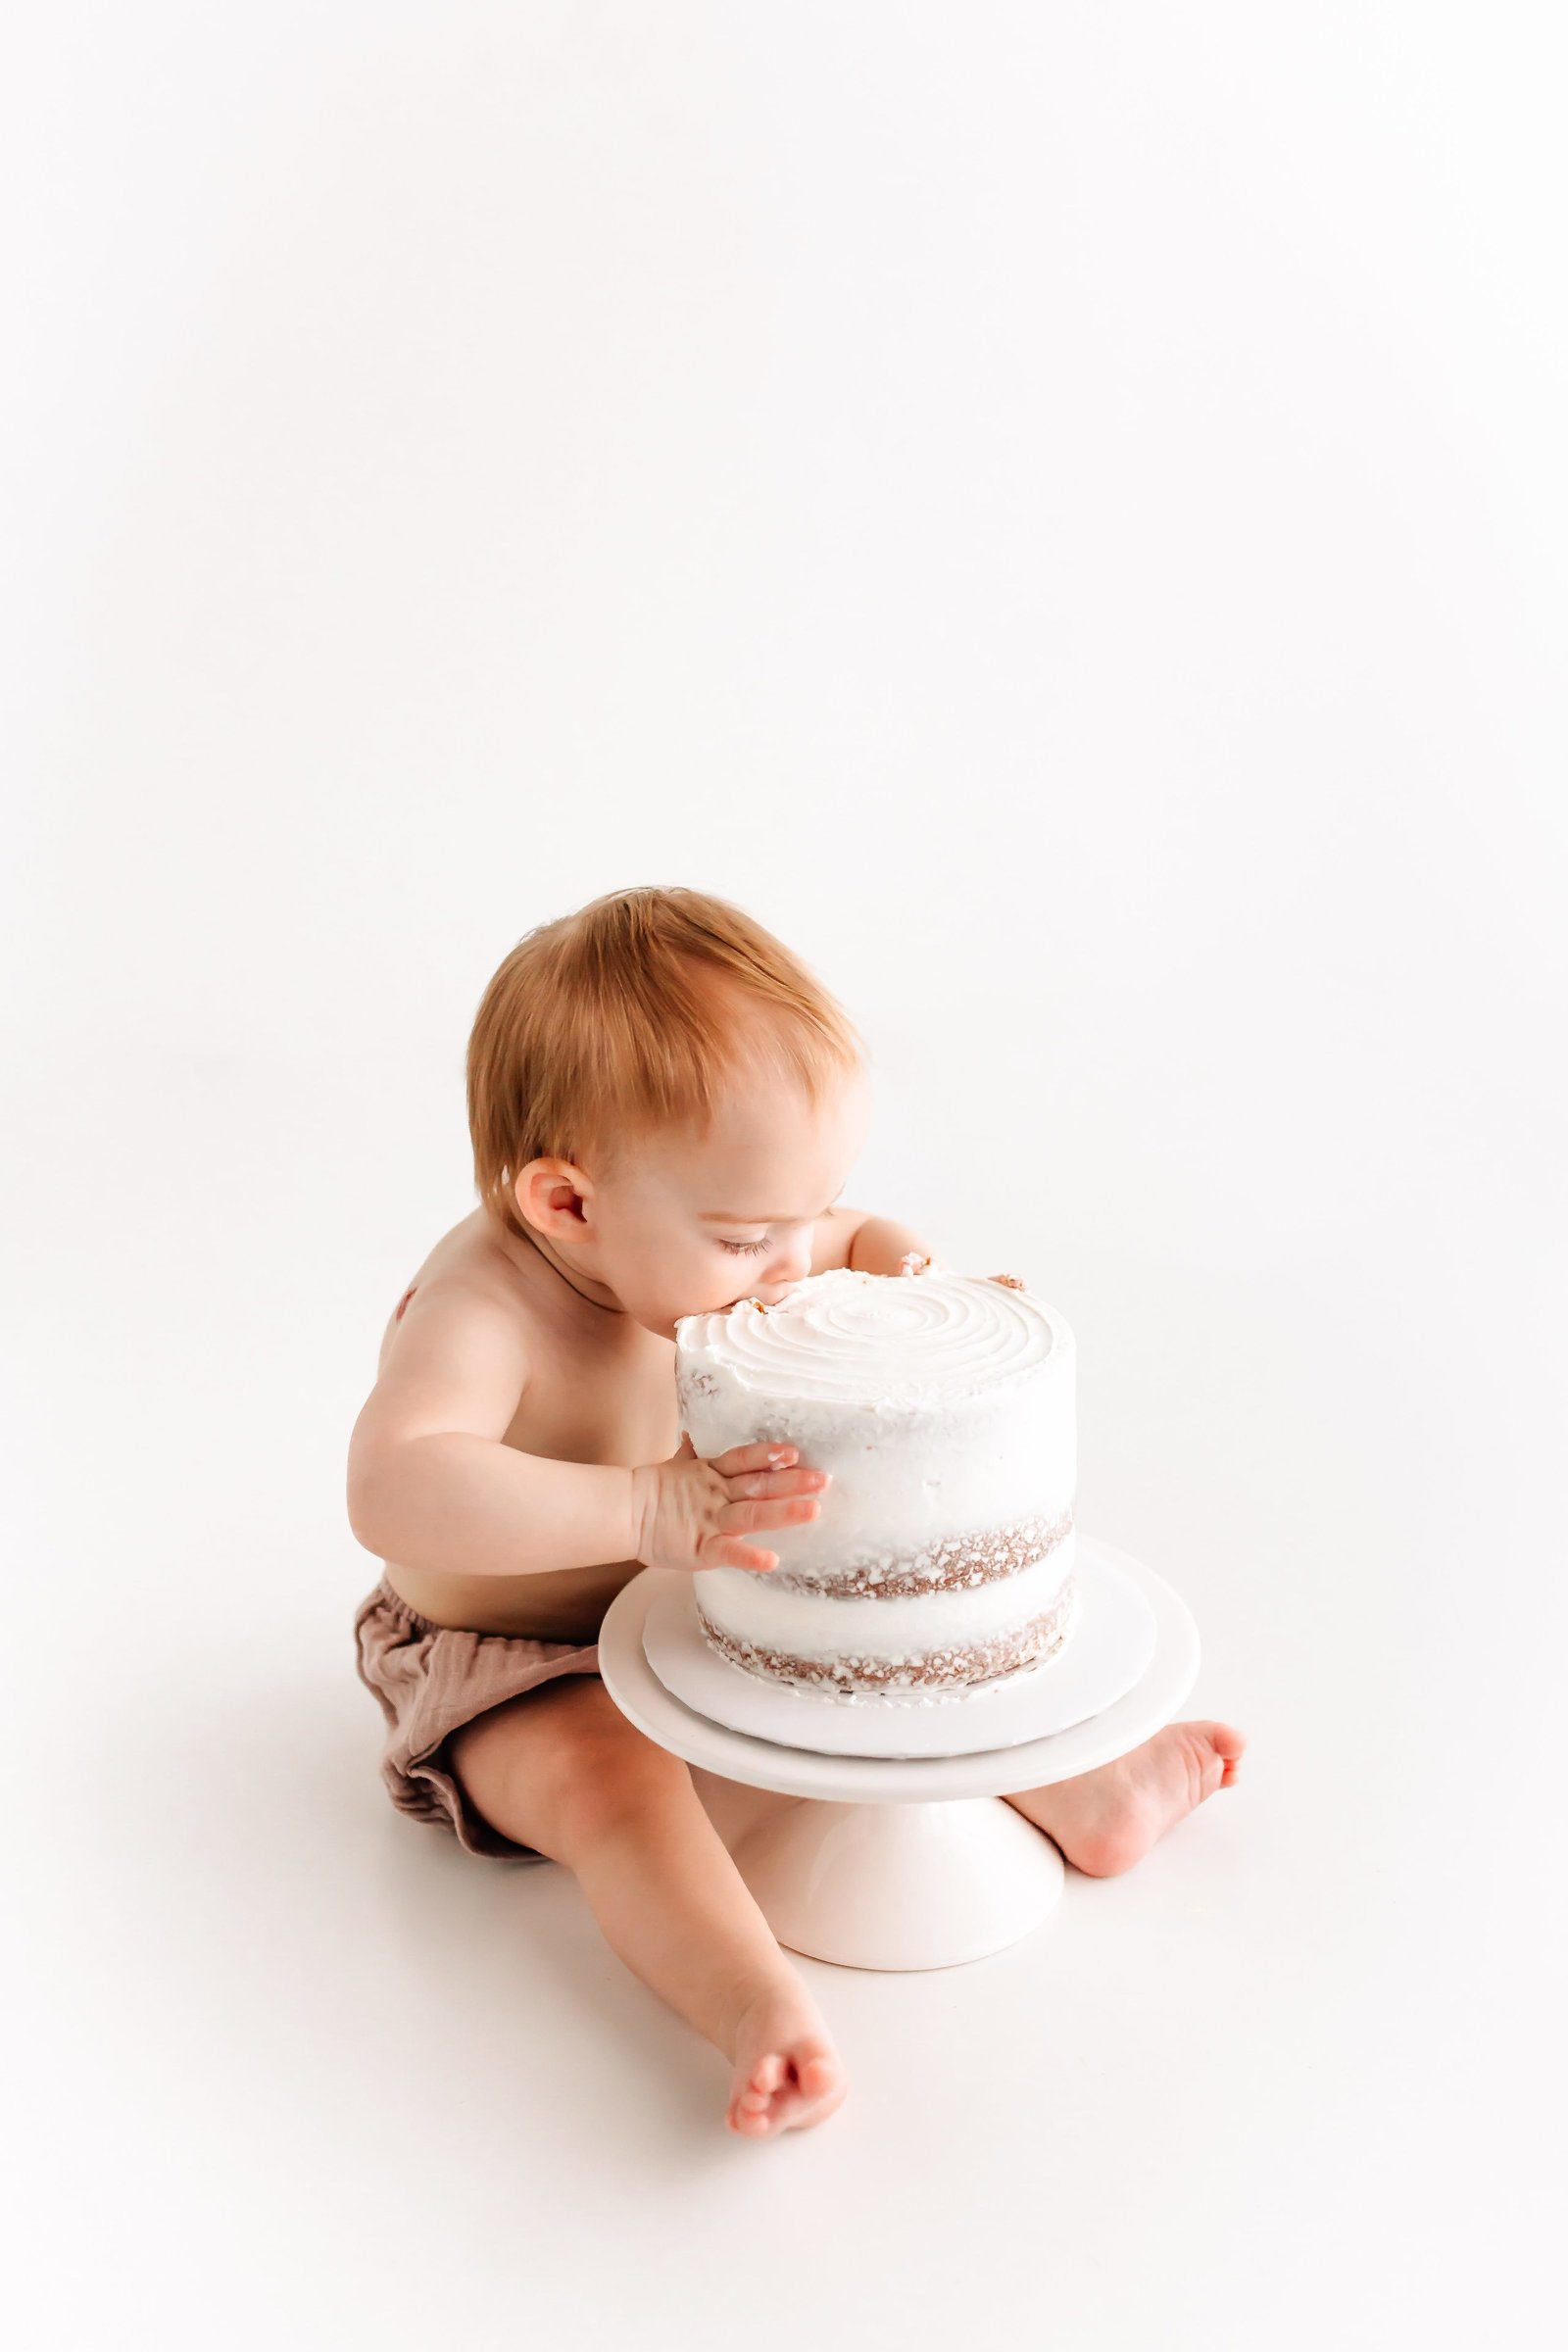 St_Louis_Baby_Photographer_Kelly_Laramore_Photography_81